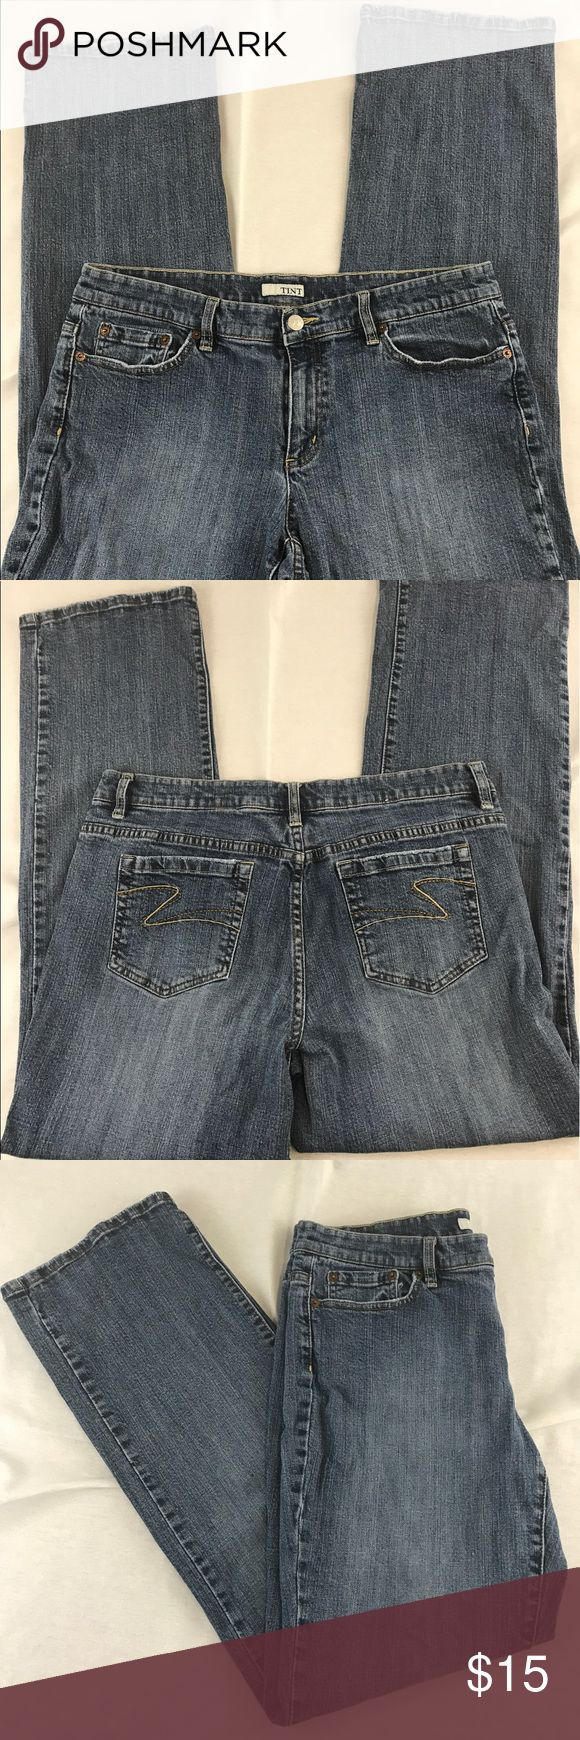 "Women's Plus Size Jeans, 14 Gently used TINT brand jeans. Plus Size, 14. Medium wash. INSEAM: 30.5"" TINT Jeans"